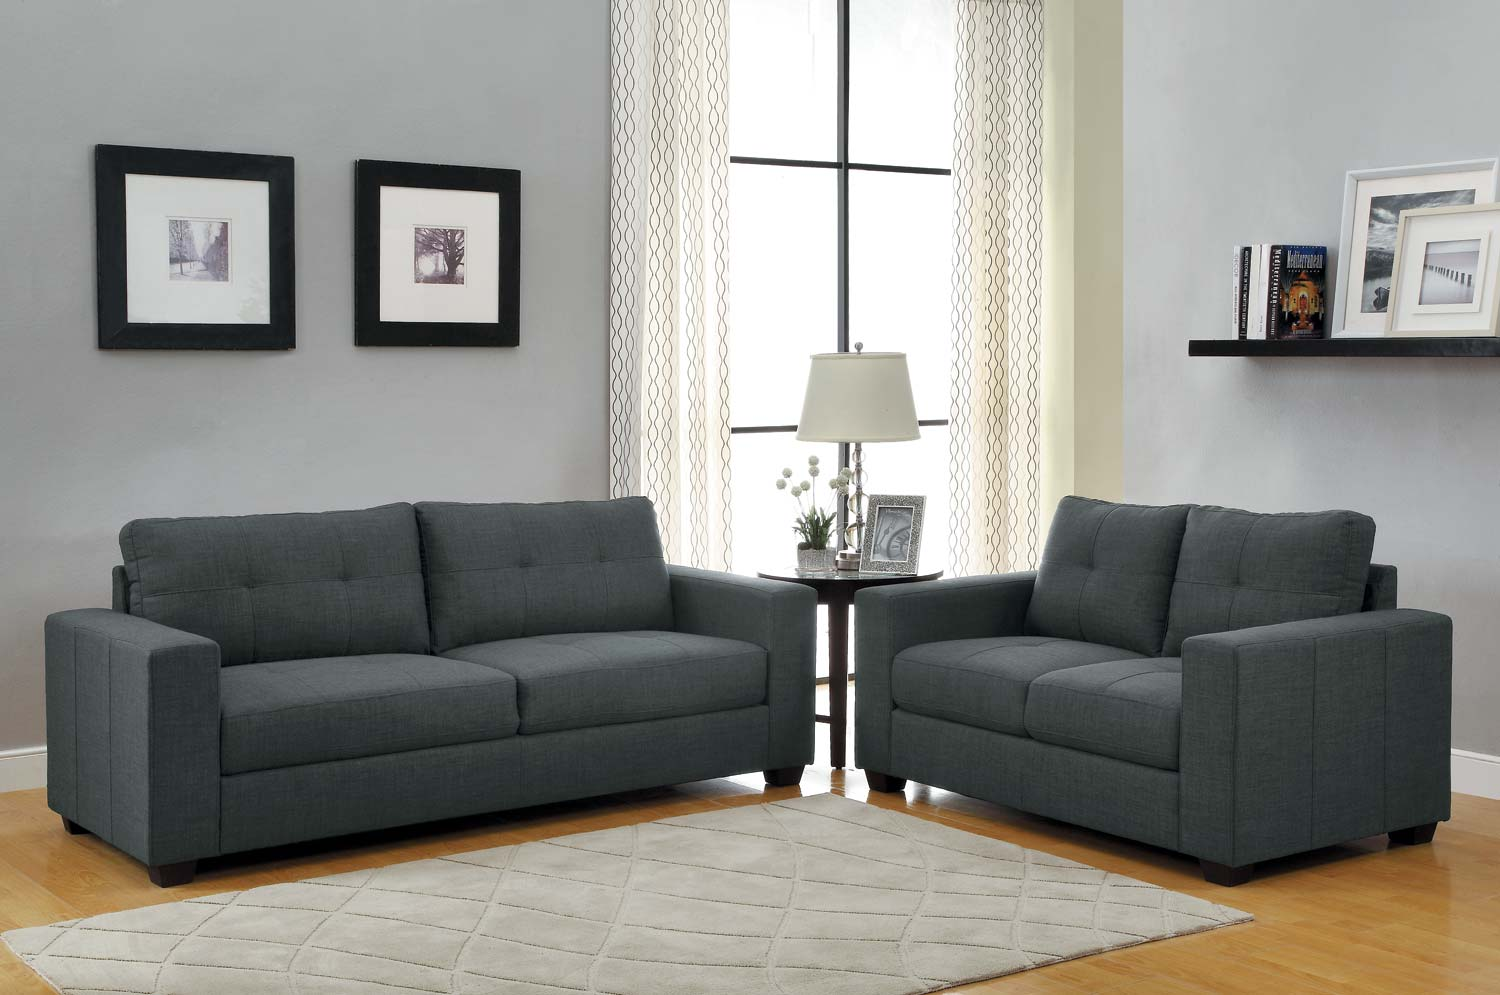 homelegance ashmont sofa set dark grey linen u9639 3. Black Bedroom Furniture Sets. Home Design Ideas